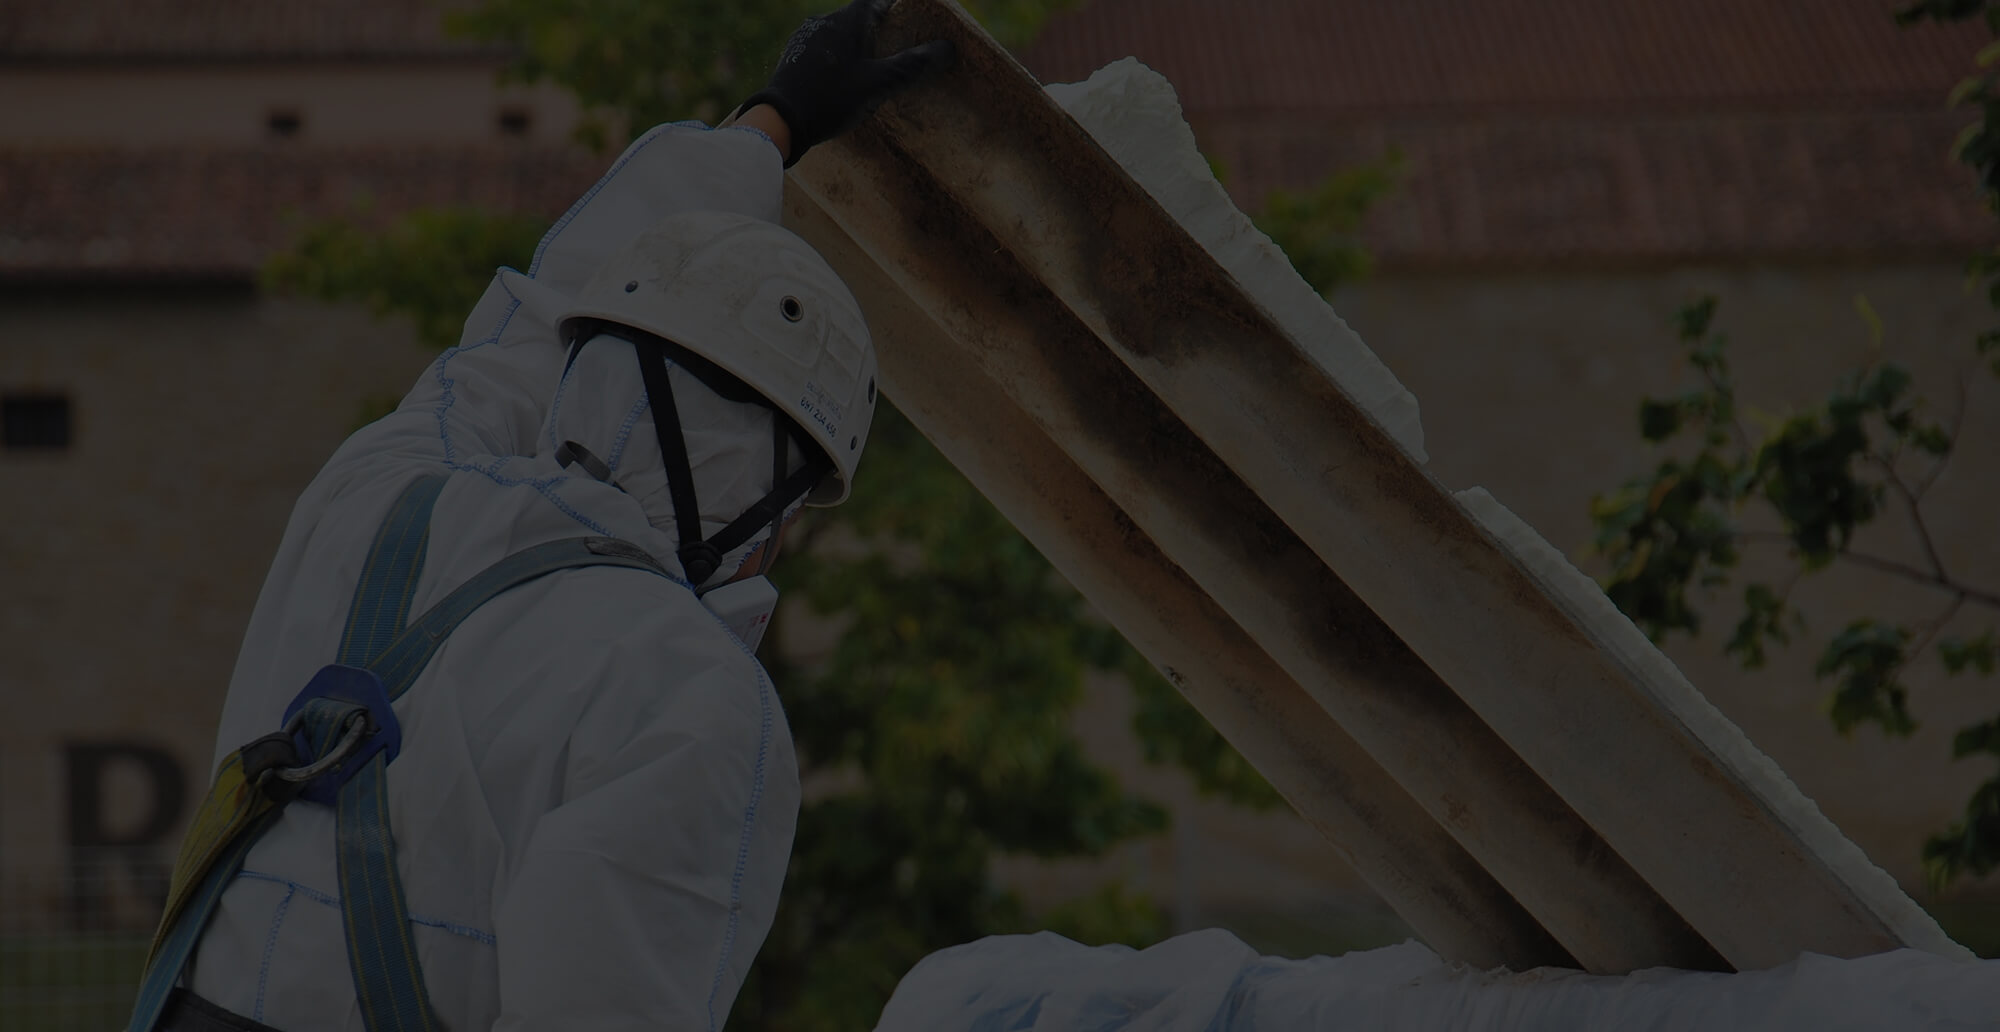 Asbestos Waste Removal - The worker leaves the asbestos waste